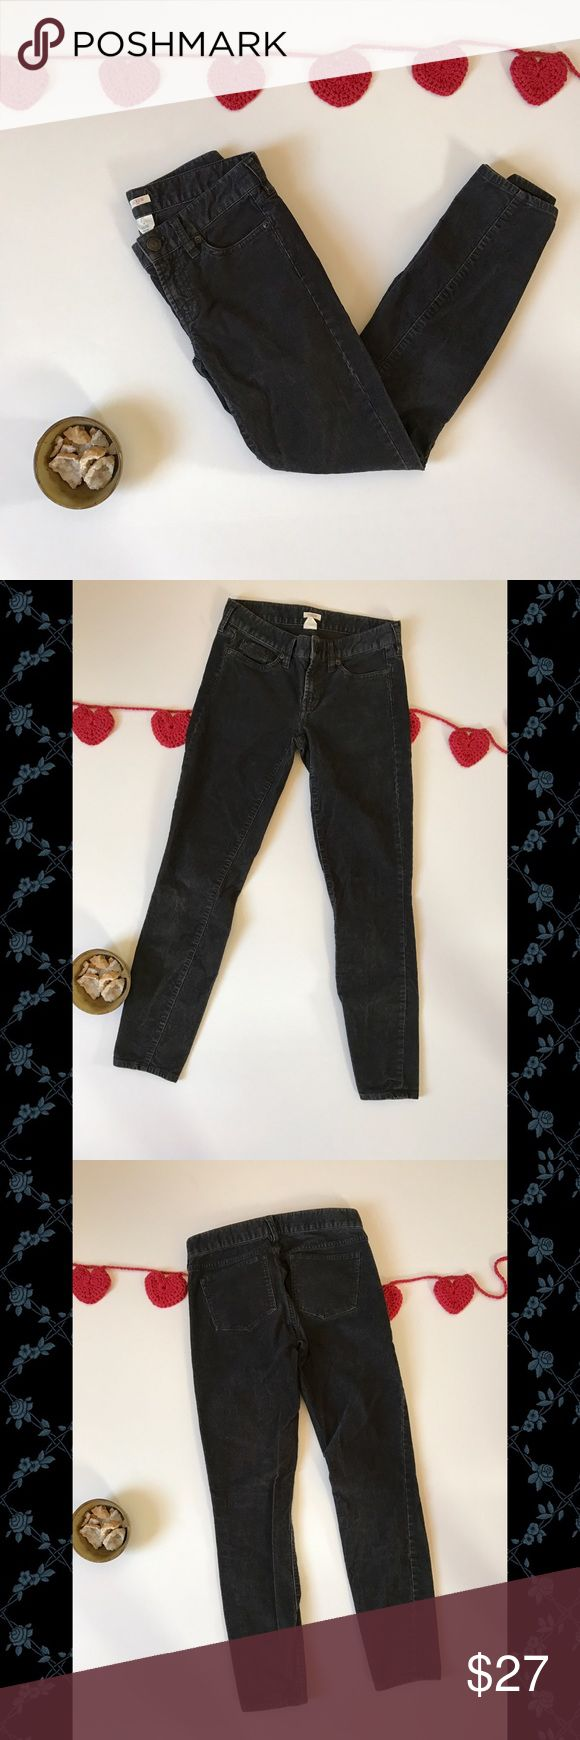 J. Crew Women's skinny gray black corduroys sz 25 This is a cute pair of skinny cords by J. Crew in dark gray/almost black. They are great for casual days and for dressing up a bit (you may even be able to rock them at the office!). They are women's size 25 and are gently pre-owned. J. Crew Pants Skinny